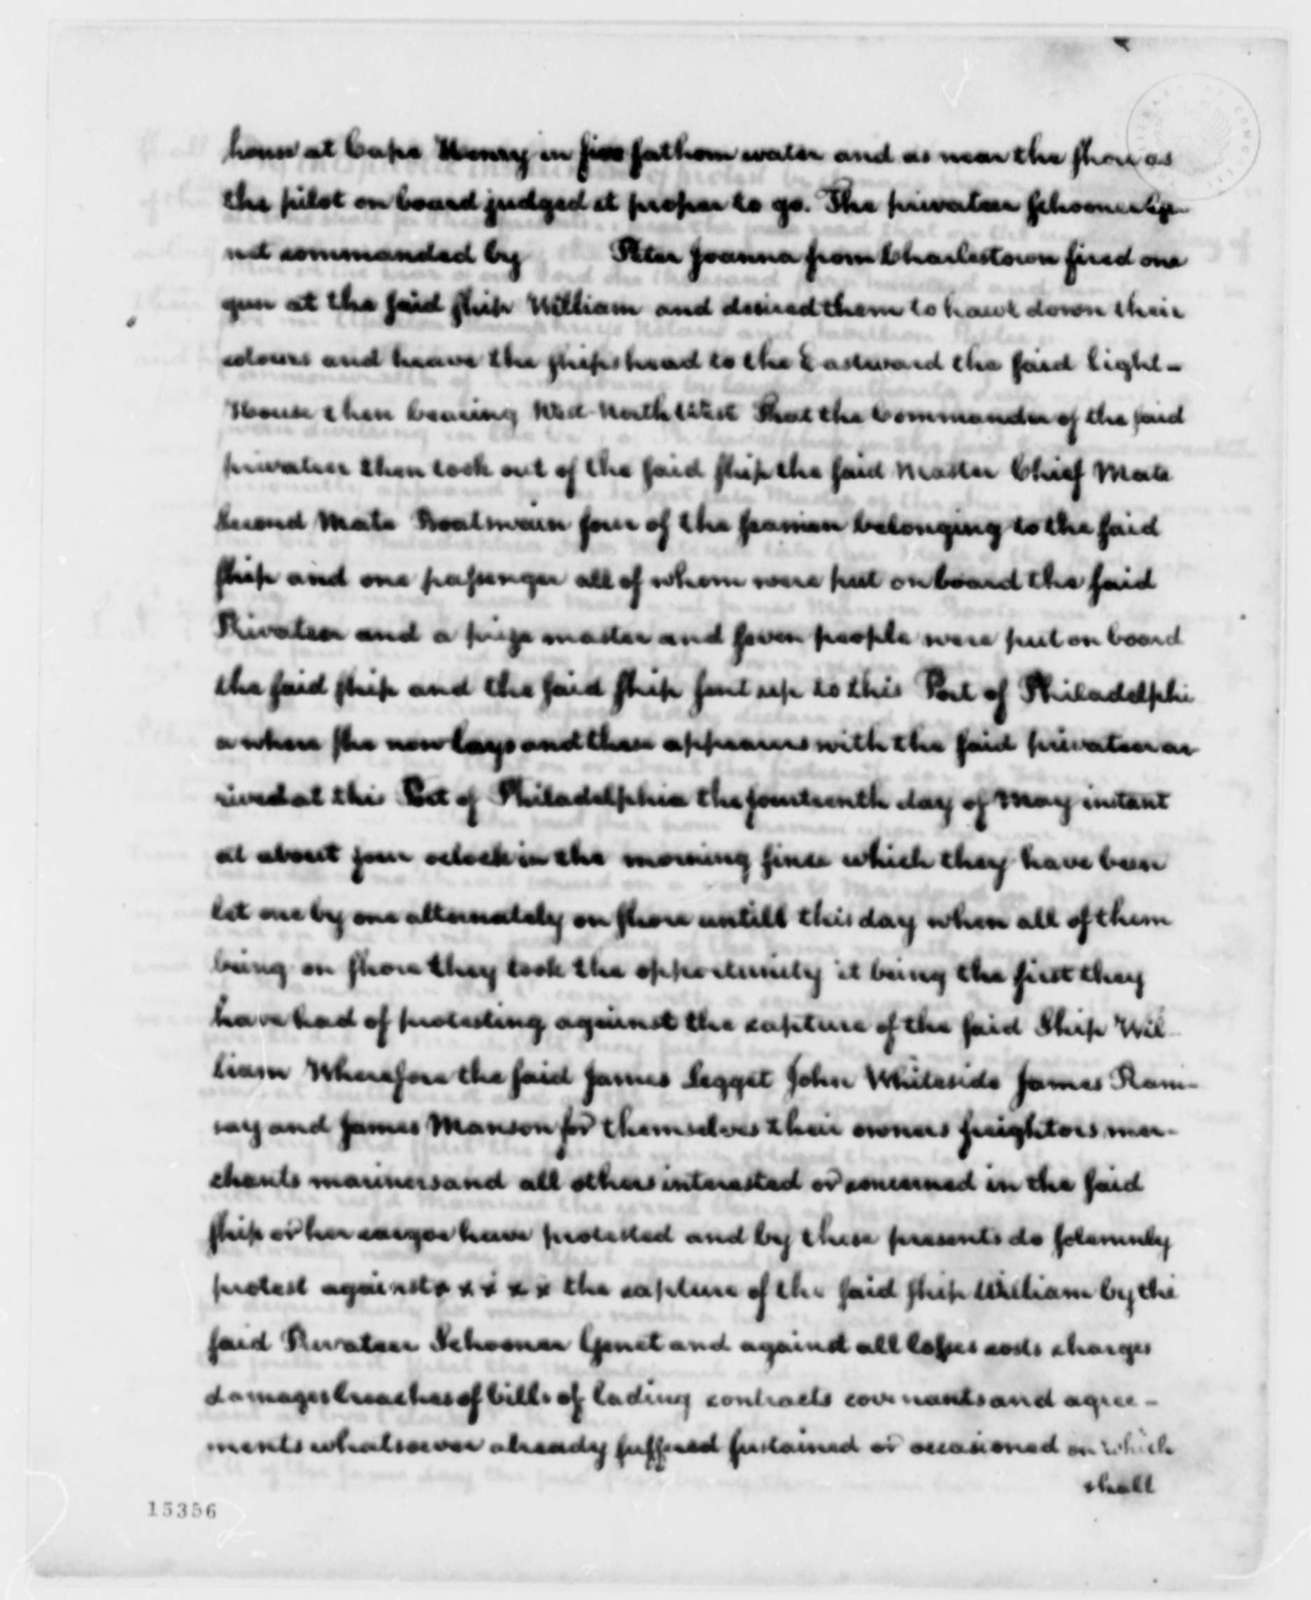 Thomas Jefferson to Edmond C. Genet, June 29, 1793, with Protests and Affidavits